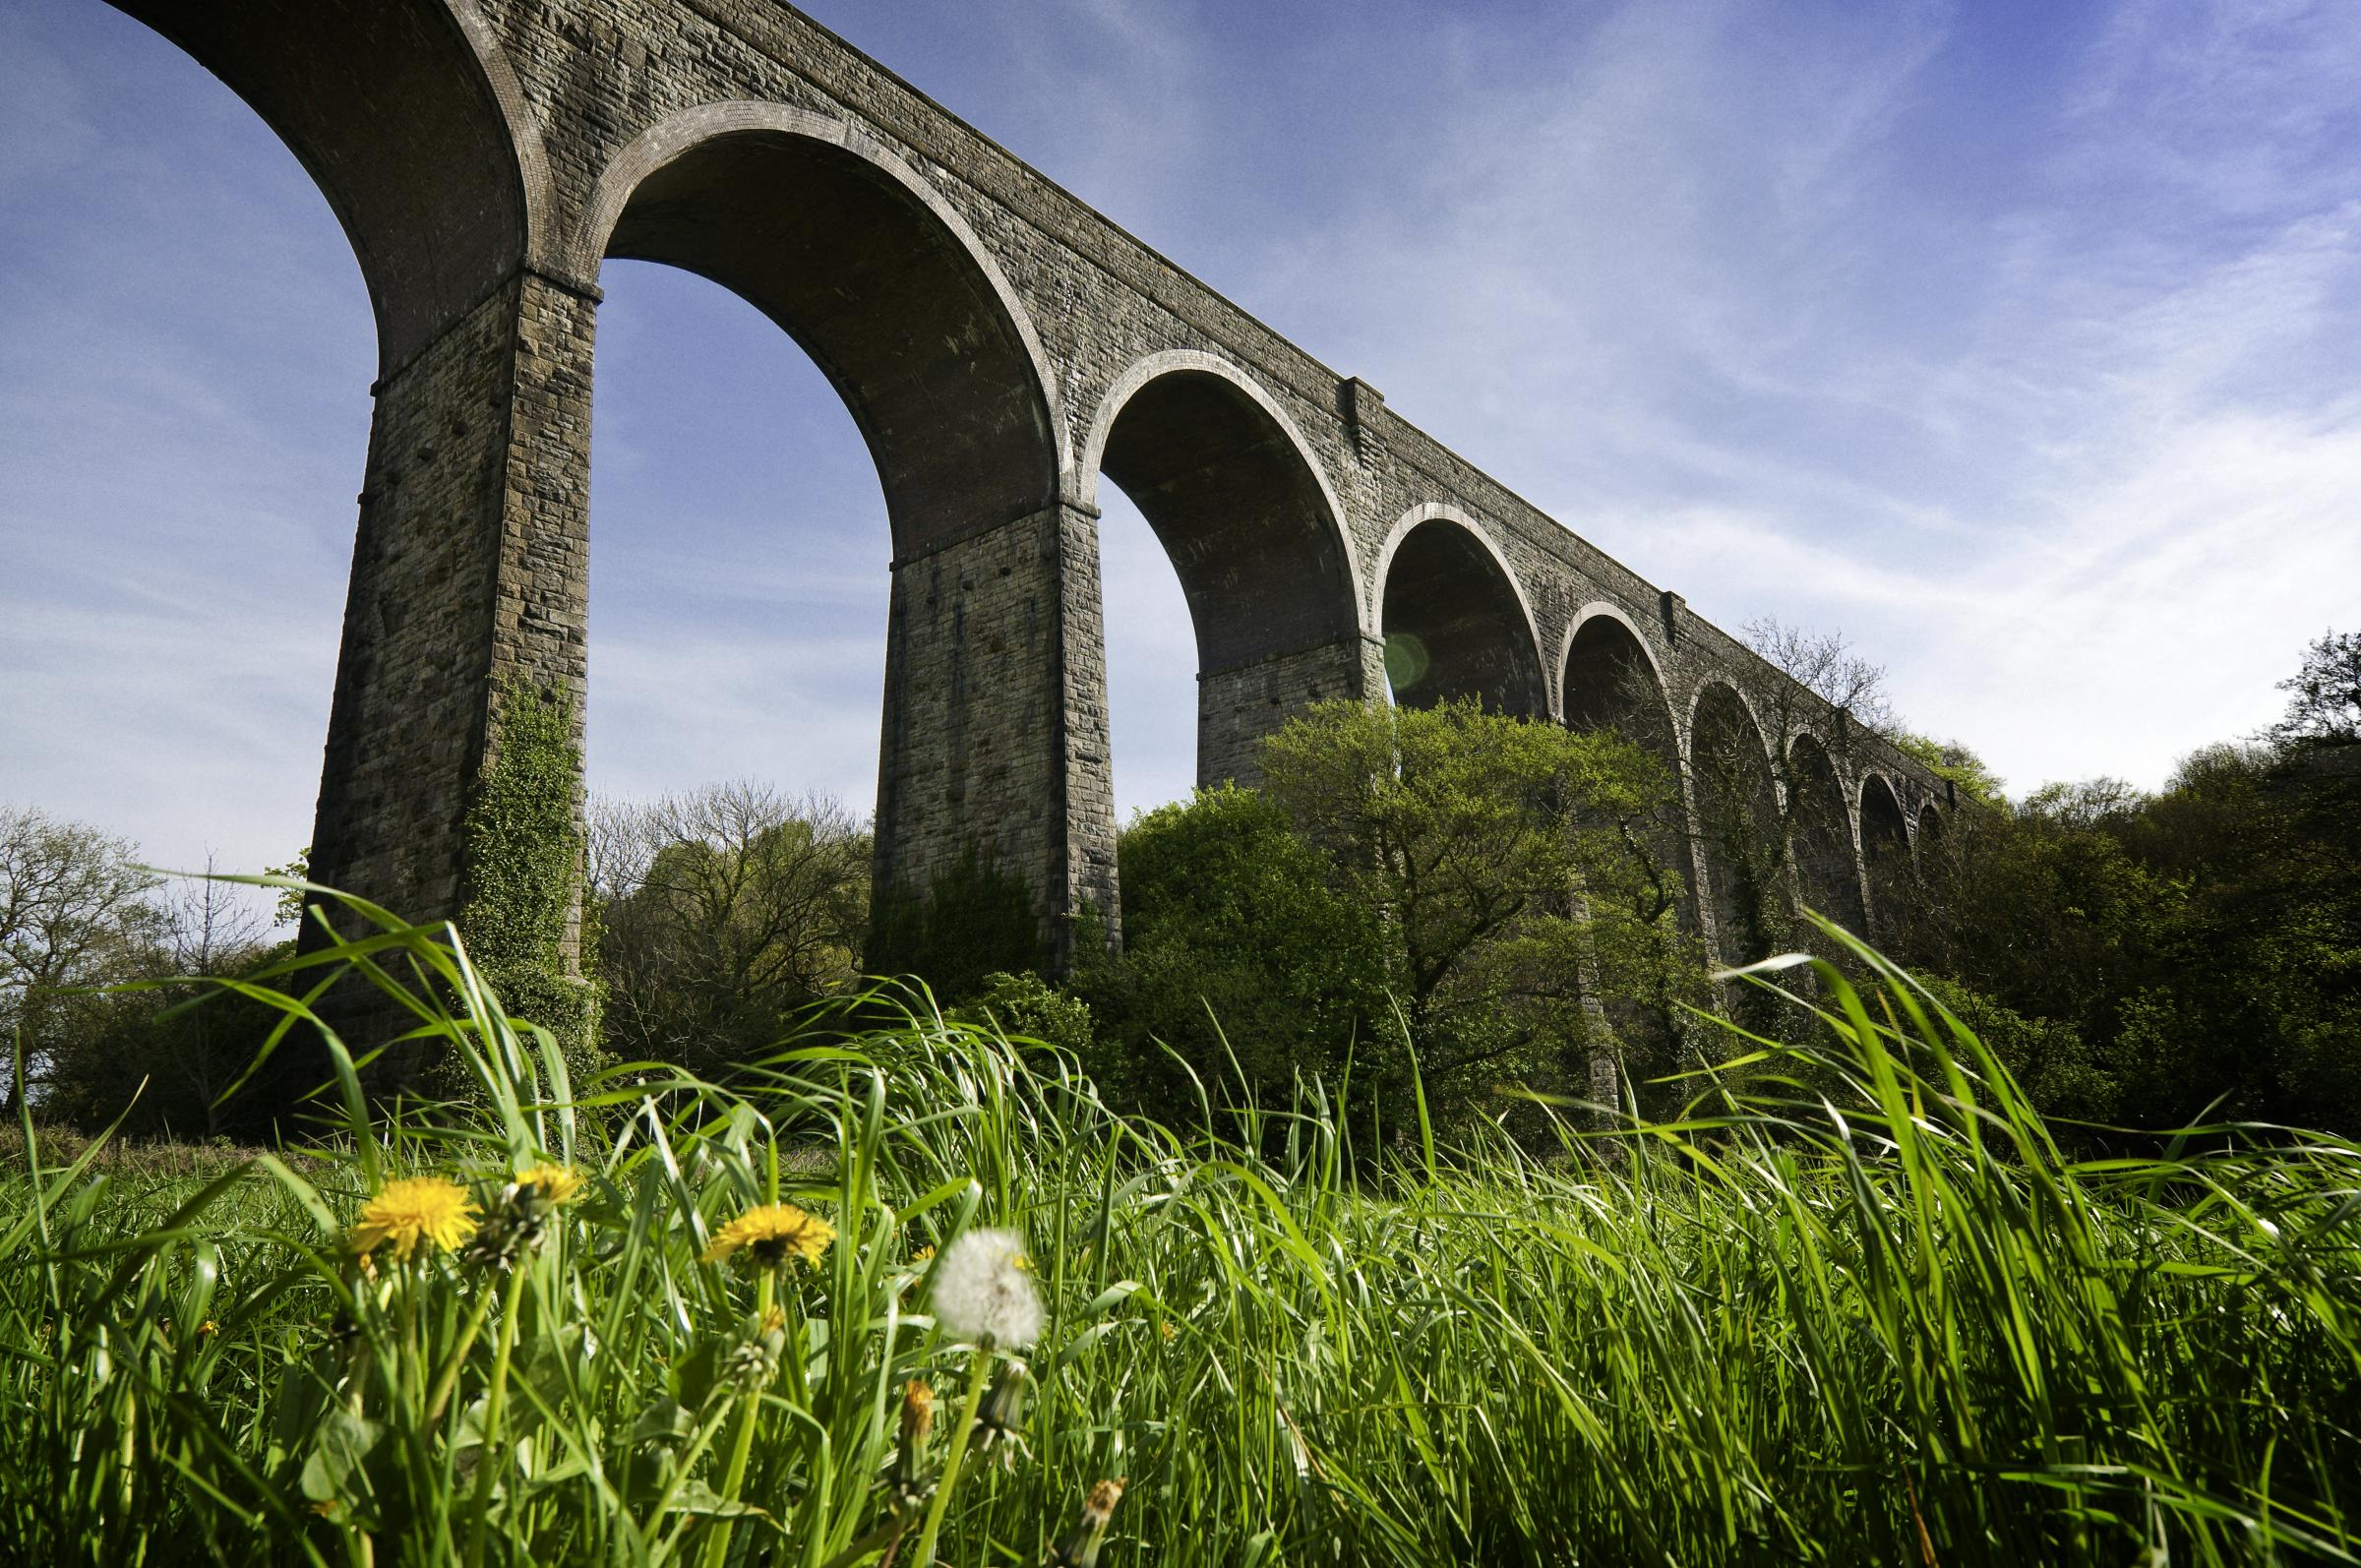 Viaduct at Porthkerry Country Park